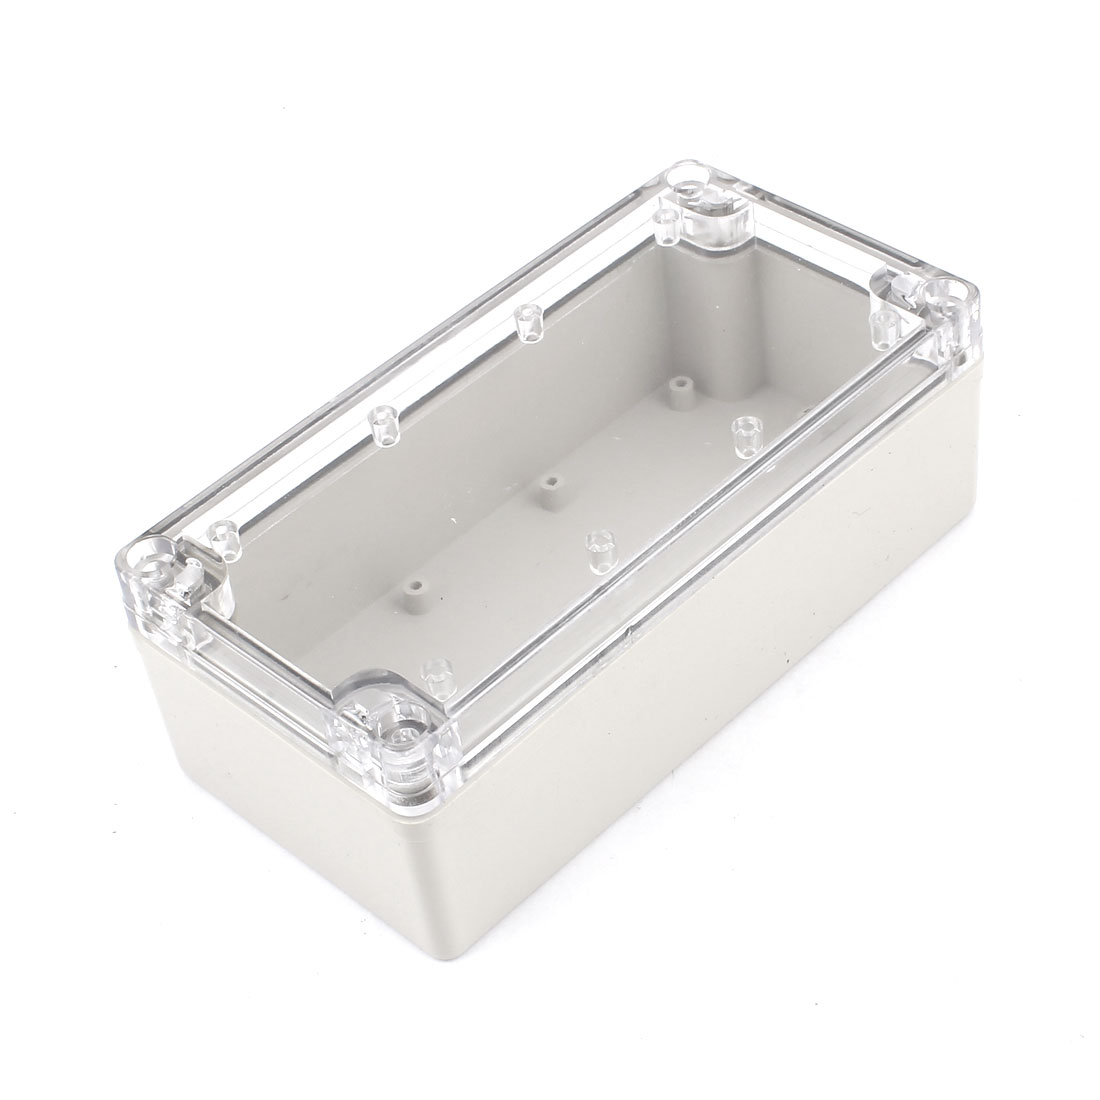 160mm x 80mm x 50mm Waterproof Plastic Sealed DIY Joint Electrical Junction Box